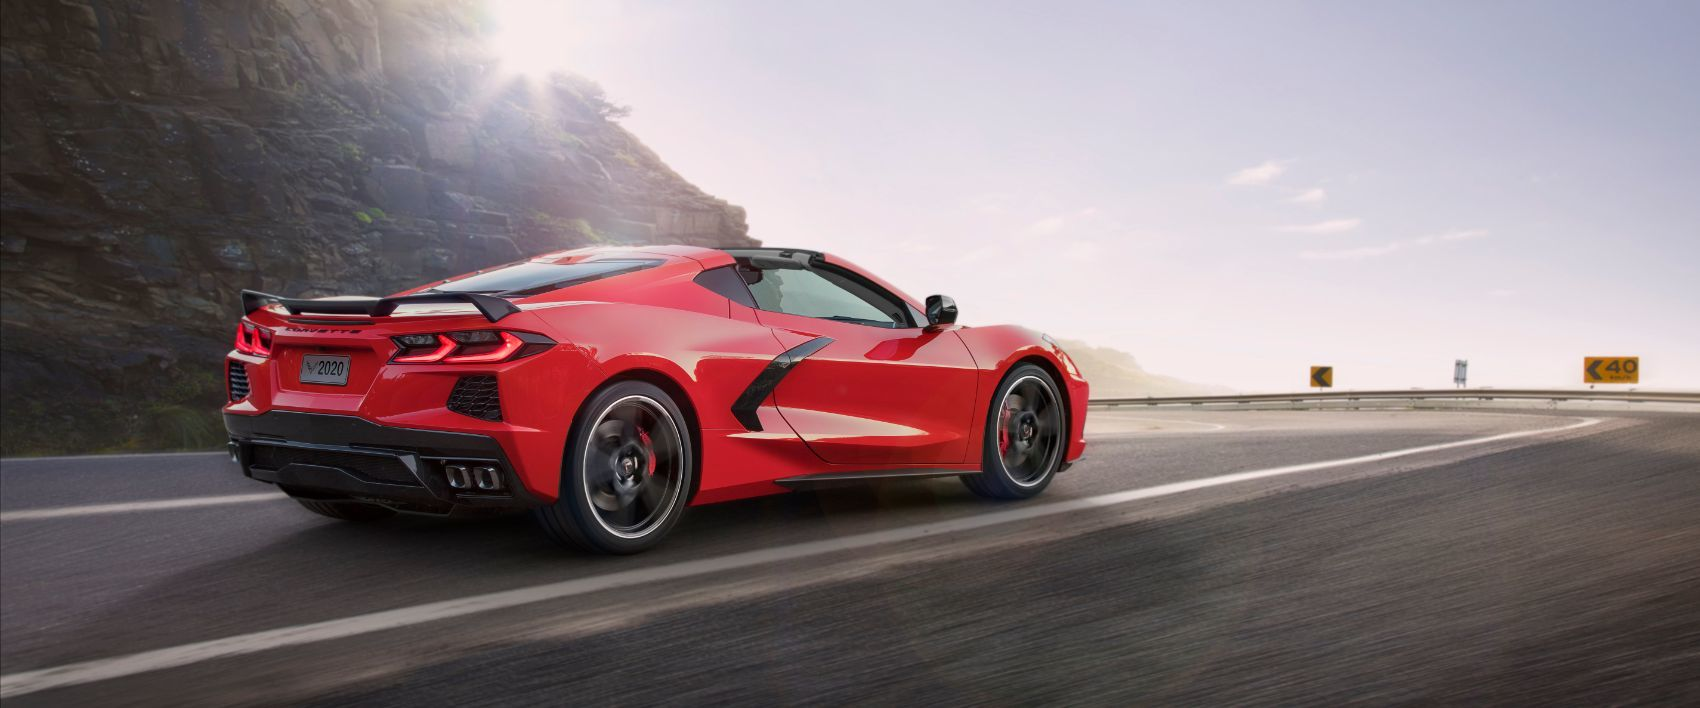 2020 Chevrolet Corvette Stingray 001